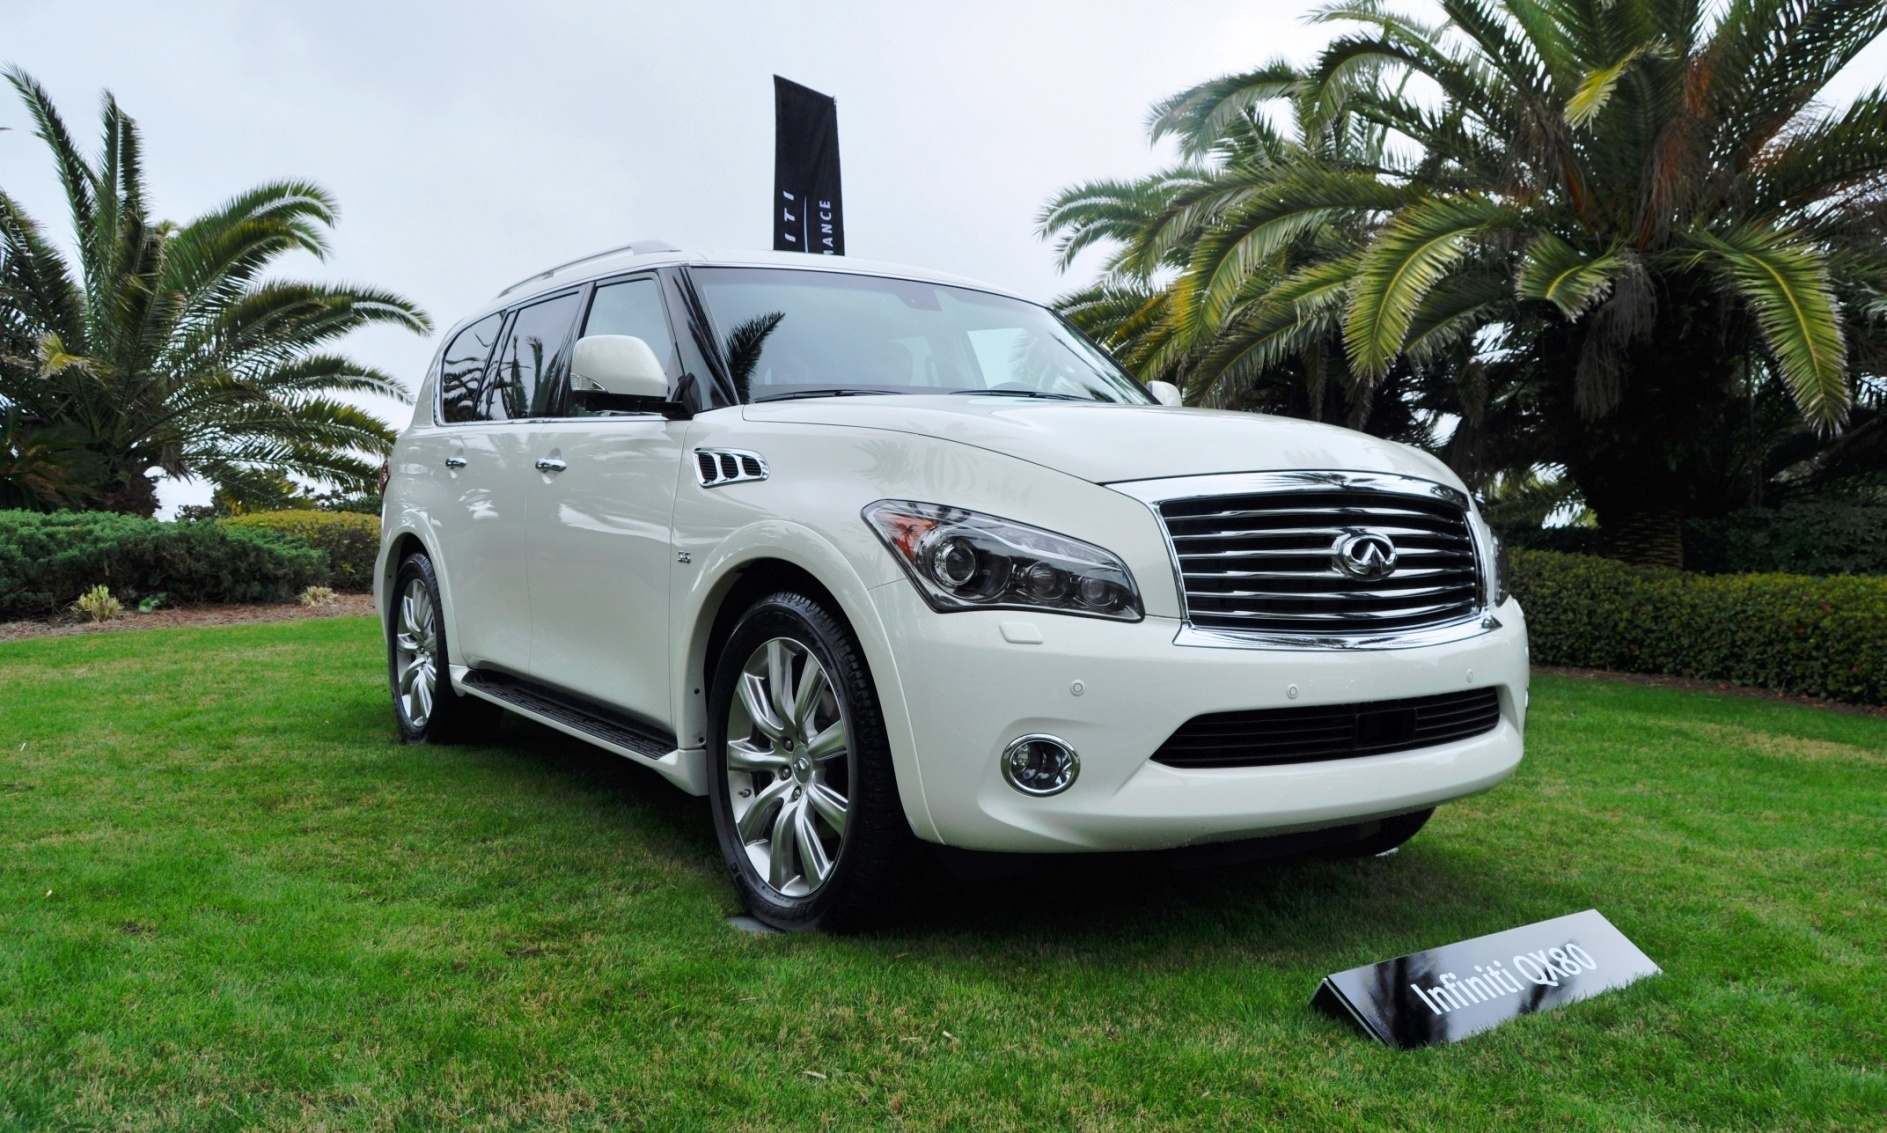 2014 infiniti qx80 review. Black Bedroom Furniture Sets. Home Design Ideas